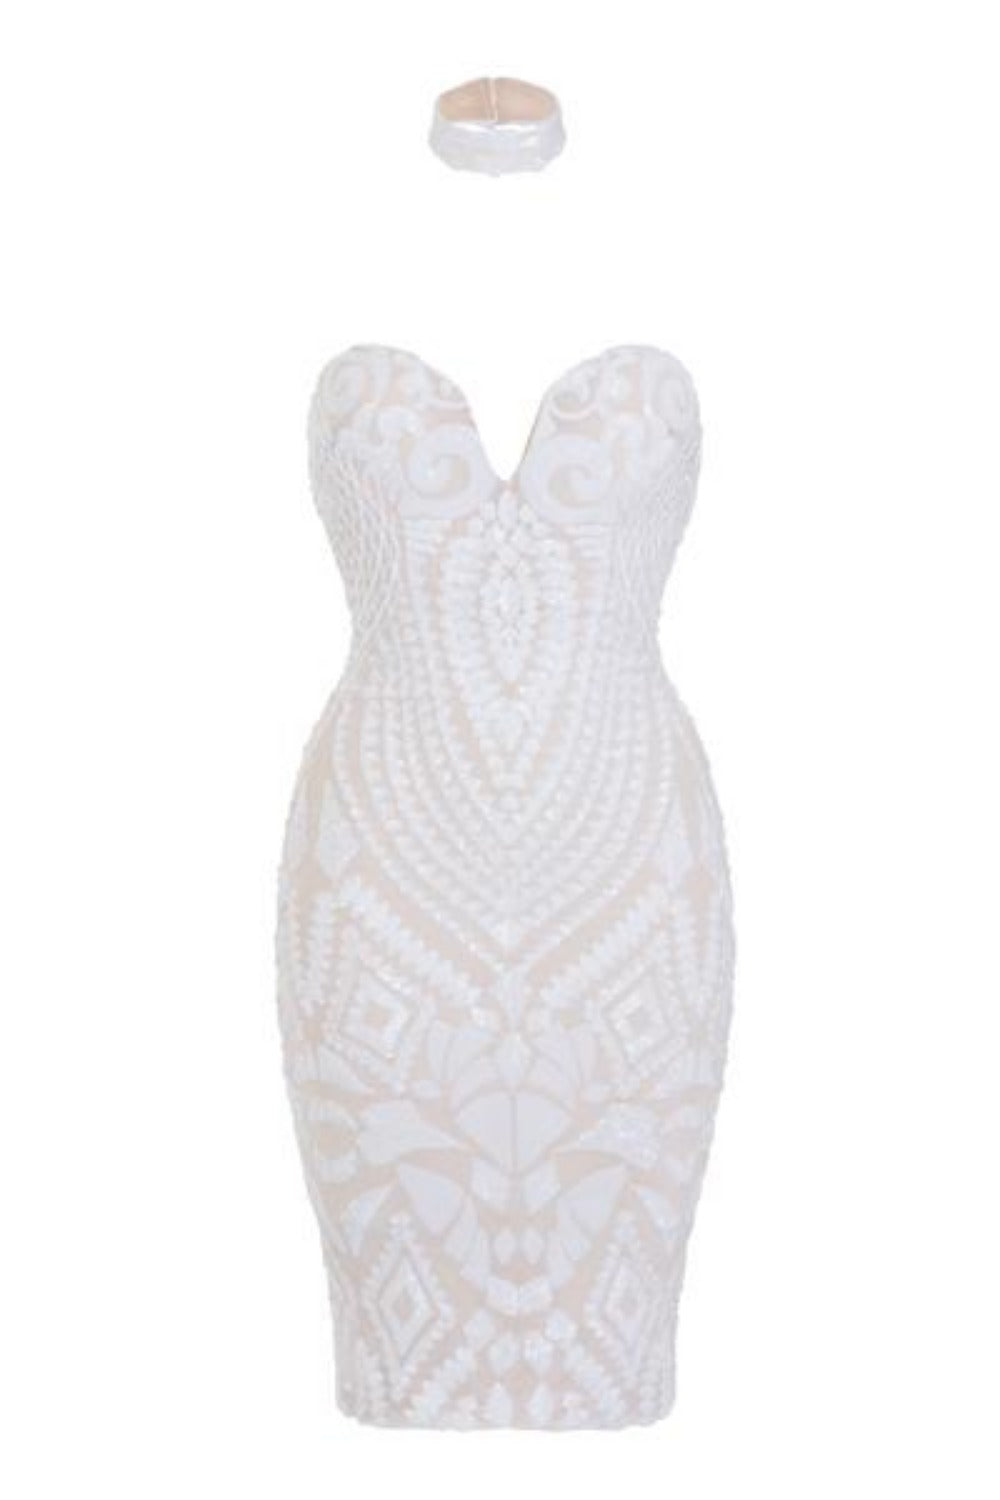 Aphrodite White Luxe Sweetheart Plunge Sequin Embellished Midi Dress